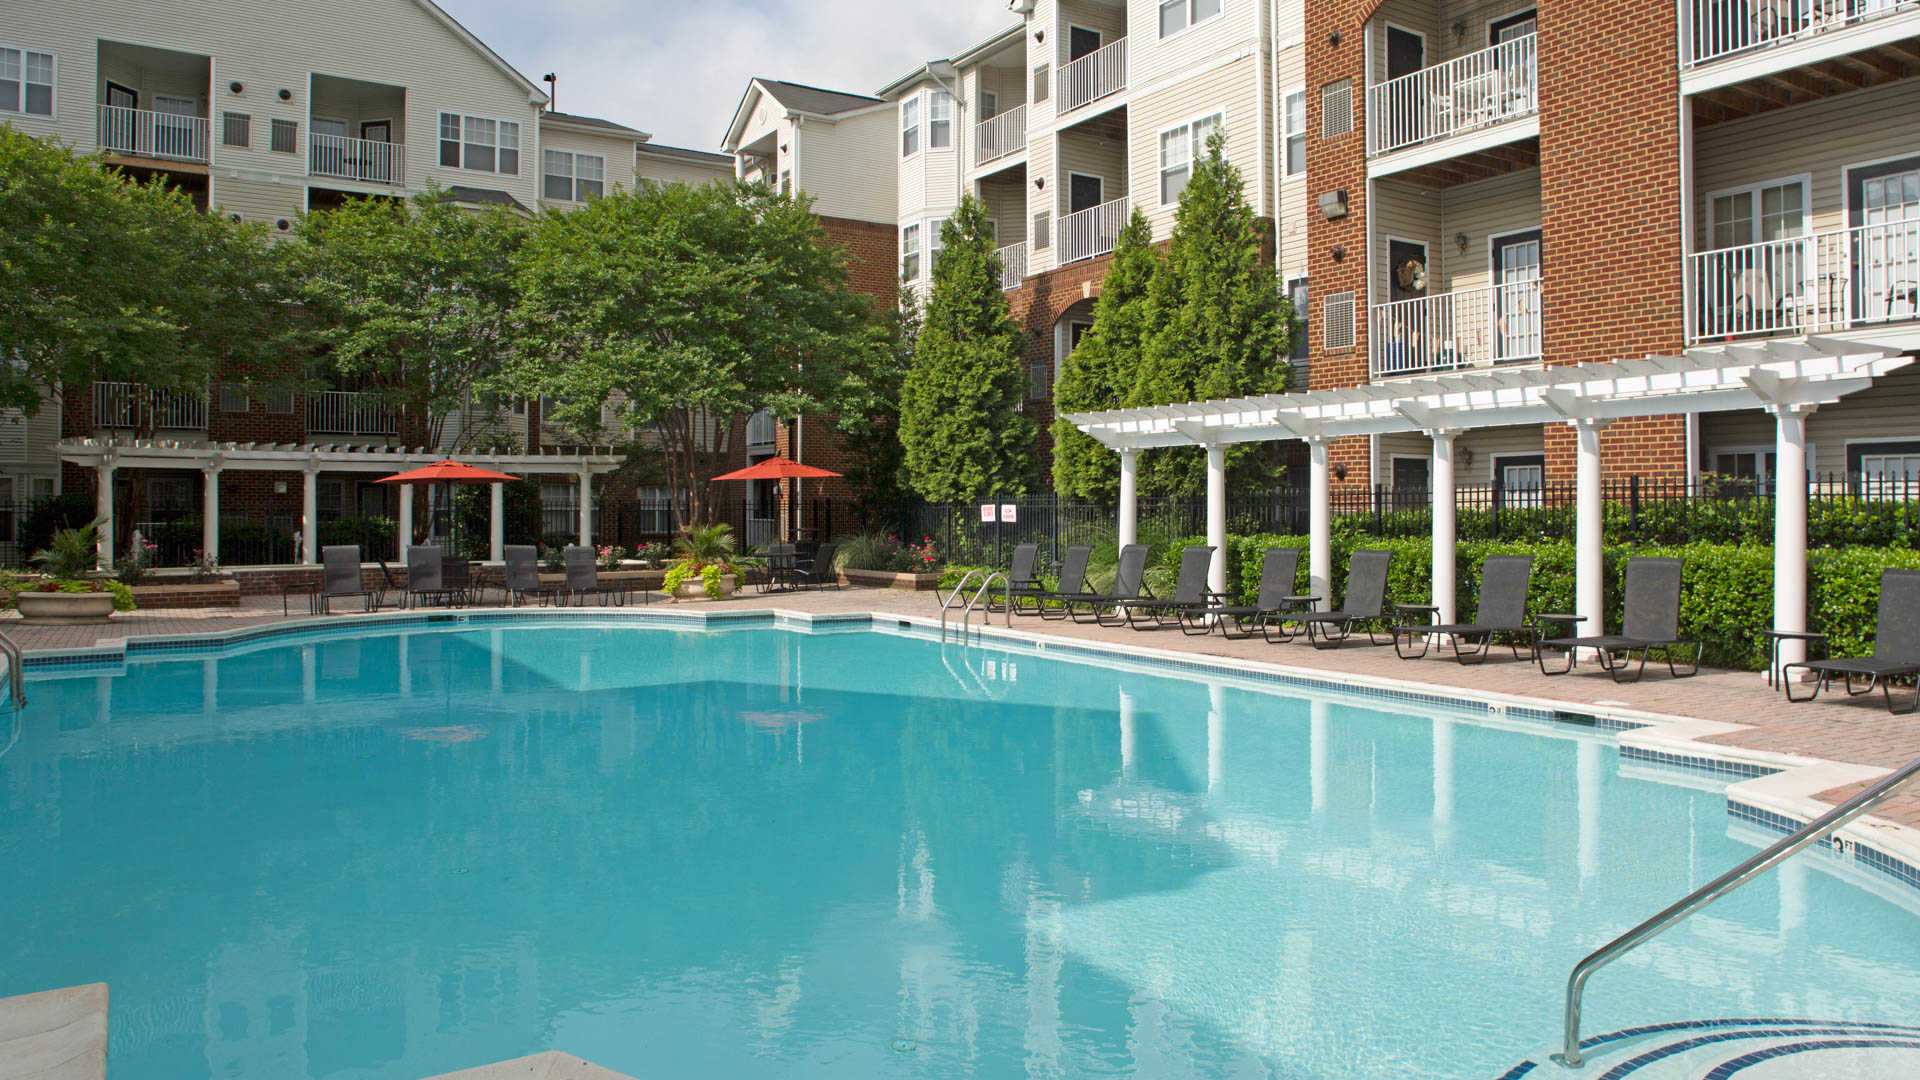 Attrayant Reserve At Potomac Yard Apartments Reviews In Alexandria   3700 Jefferson  Davis Hwy | EquityApartments.com